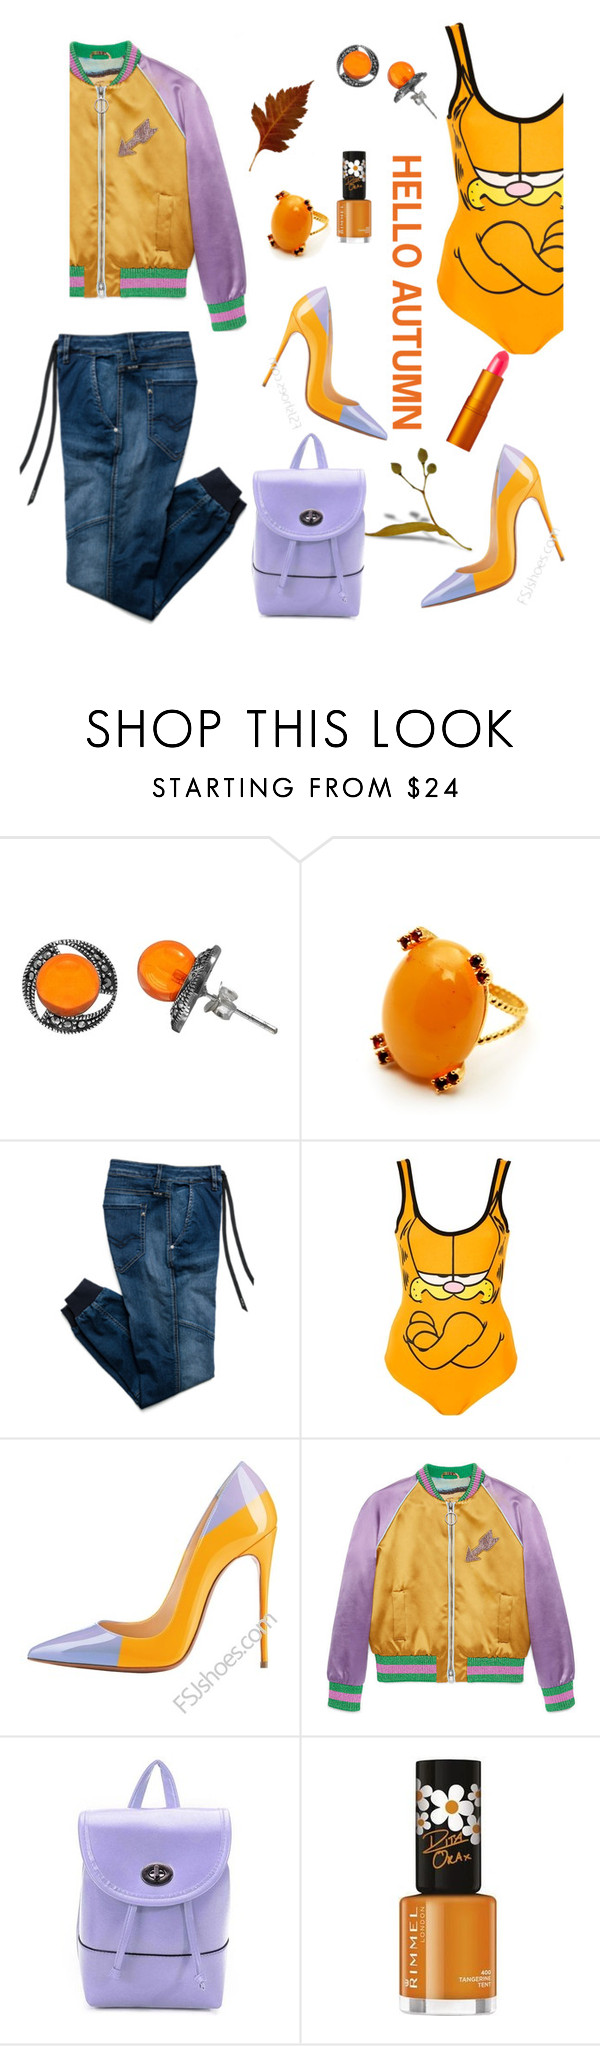 """""""Untitled #825"""" by lisacom ❤ liked on Polyvore featuring Goldmajor, Replay, Topshop, Gucci, Rimmel and Lipstick Queen"""